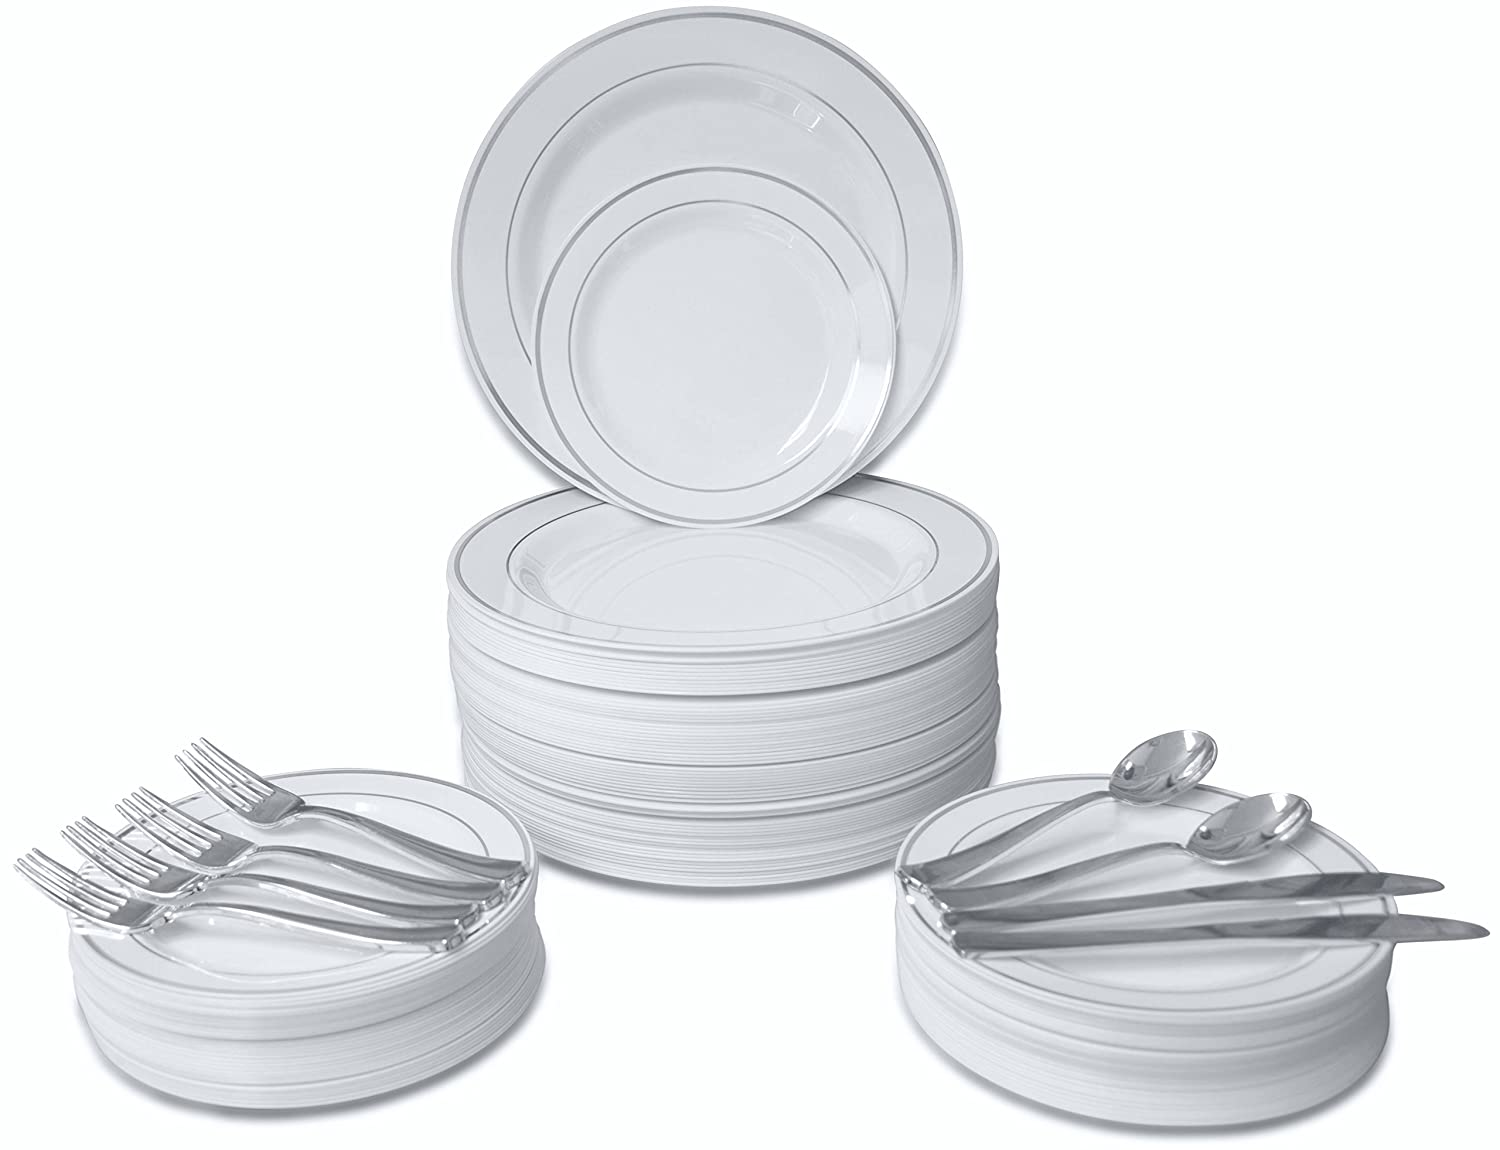 Amazon.com 360 PIECE / 60 guest \ OCCASIONS\  Wedding Disposable Plastic Plate and Silverware Combo (White/Silver rim plates) Kitchen \u0026 Dining  sc 1 st  Amazon.com & Amazon.com: 360 PIECE / 60 guest \